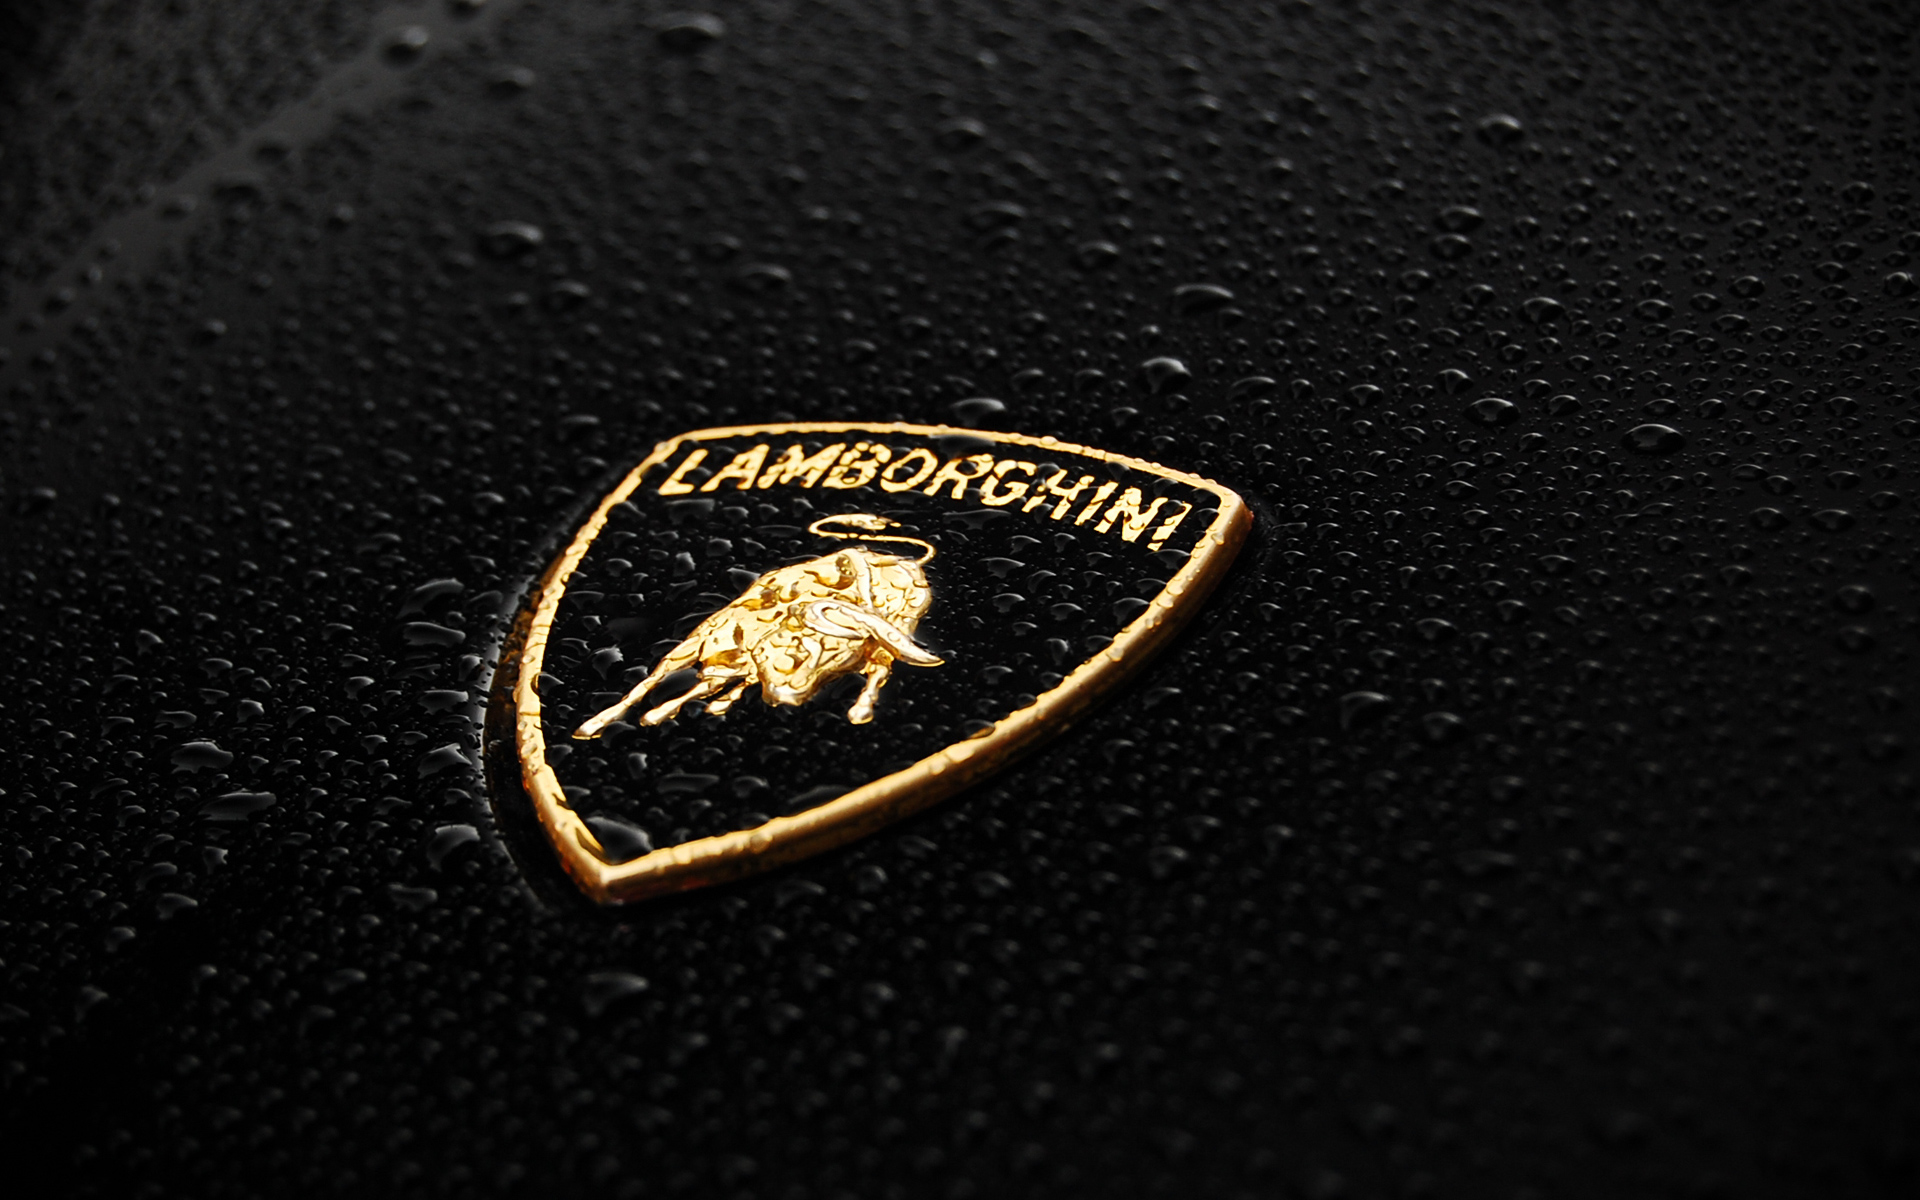 Lamborghini Aventador Pictures On Hd Wallpapers Download Lamborghini